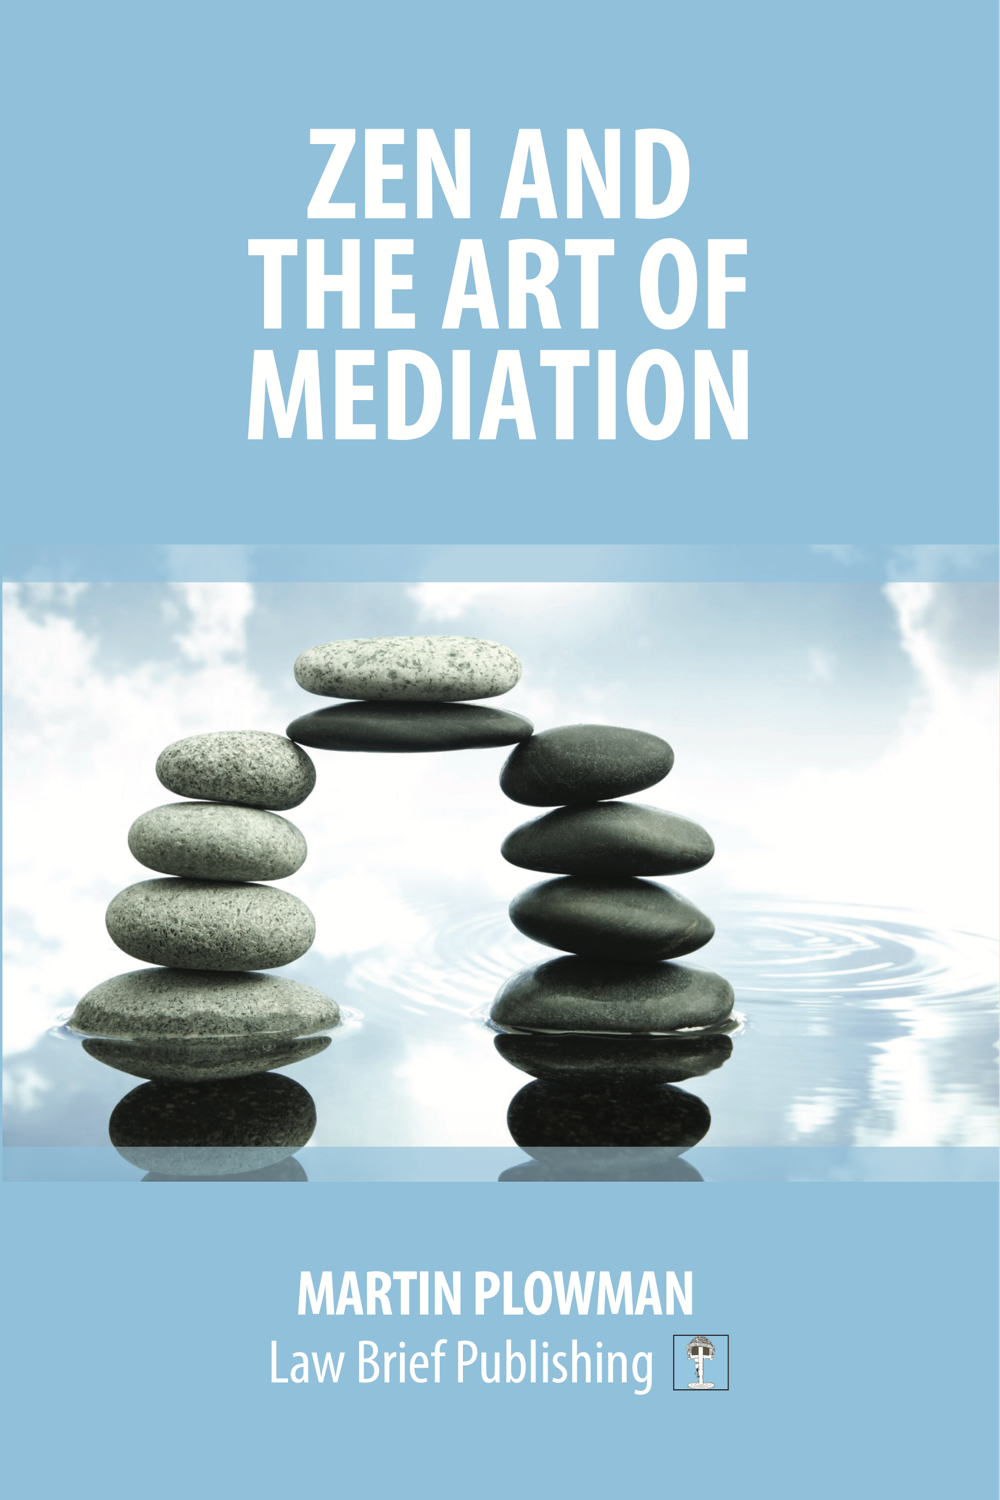 Zen and the Art of Mediation' by Martin Plowman – Law Brief